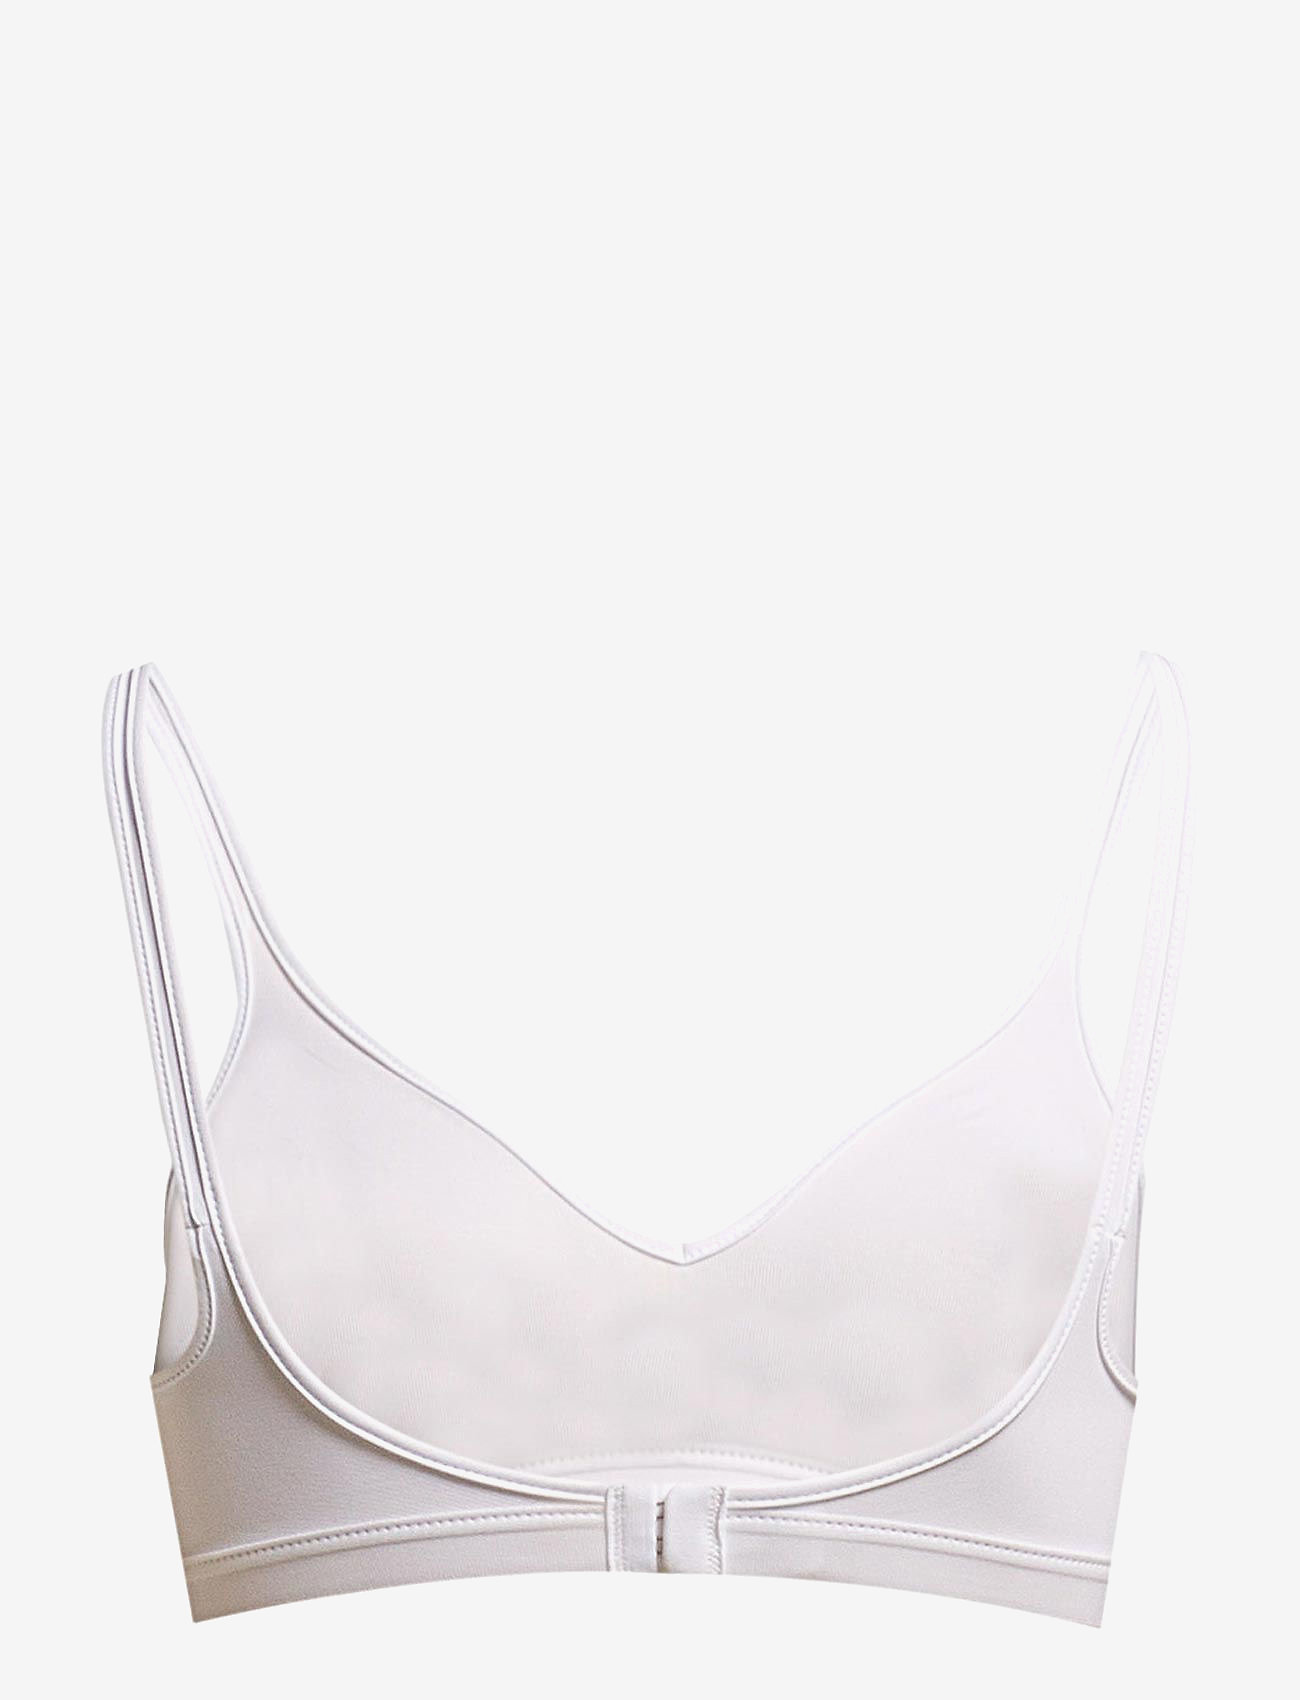 sloggi - sloggi One Size N - bra without wire - white